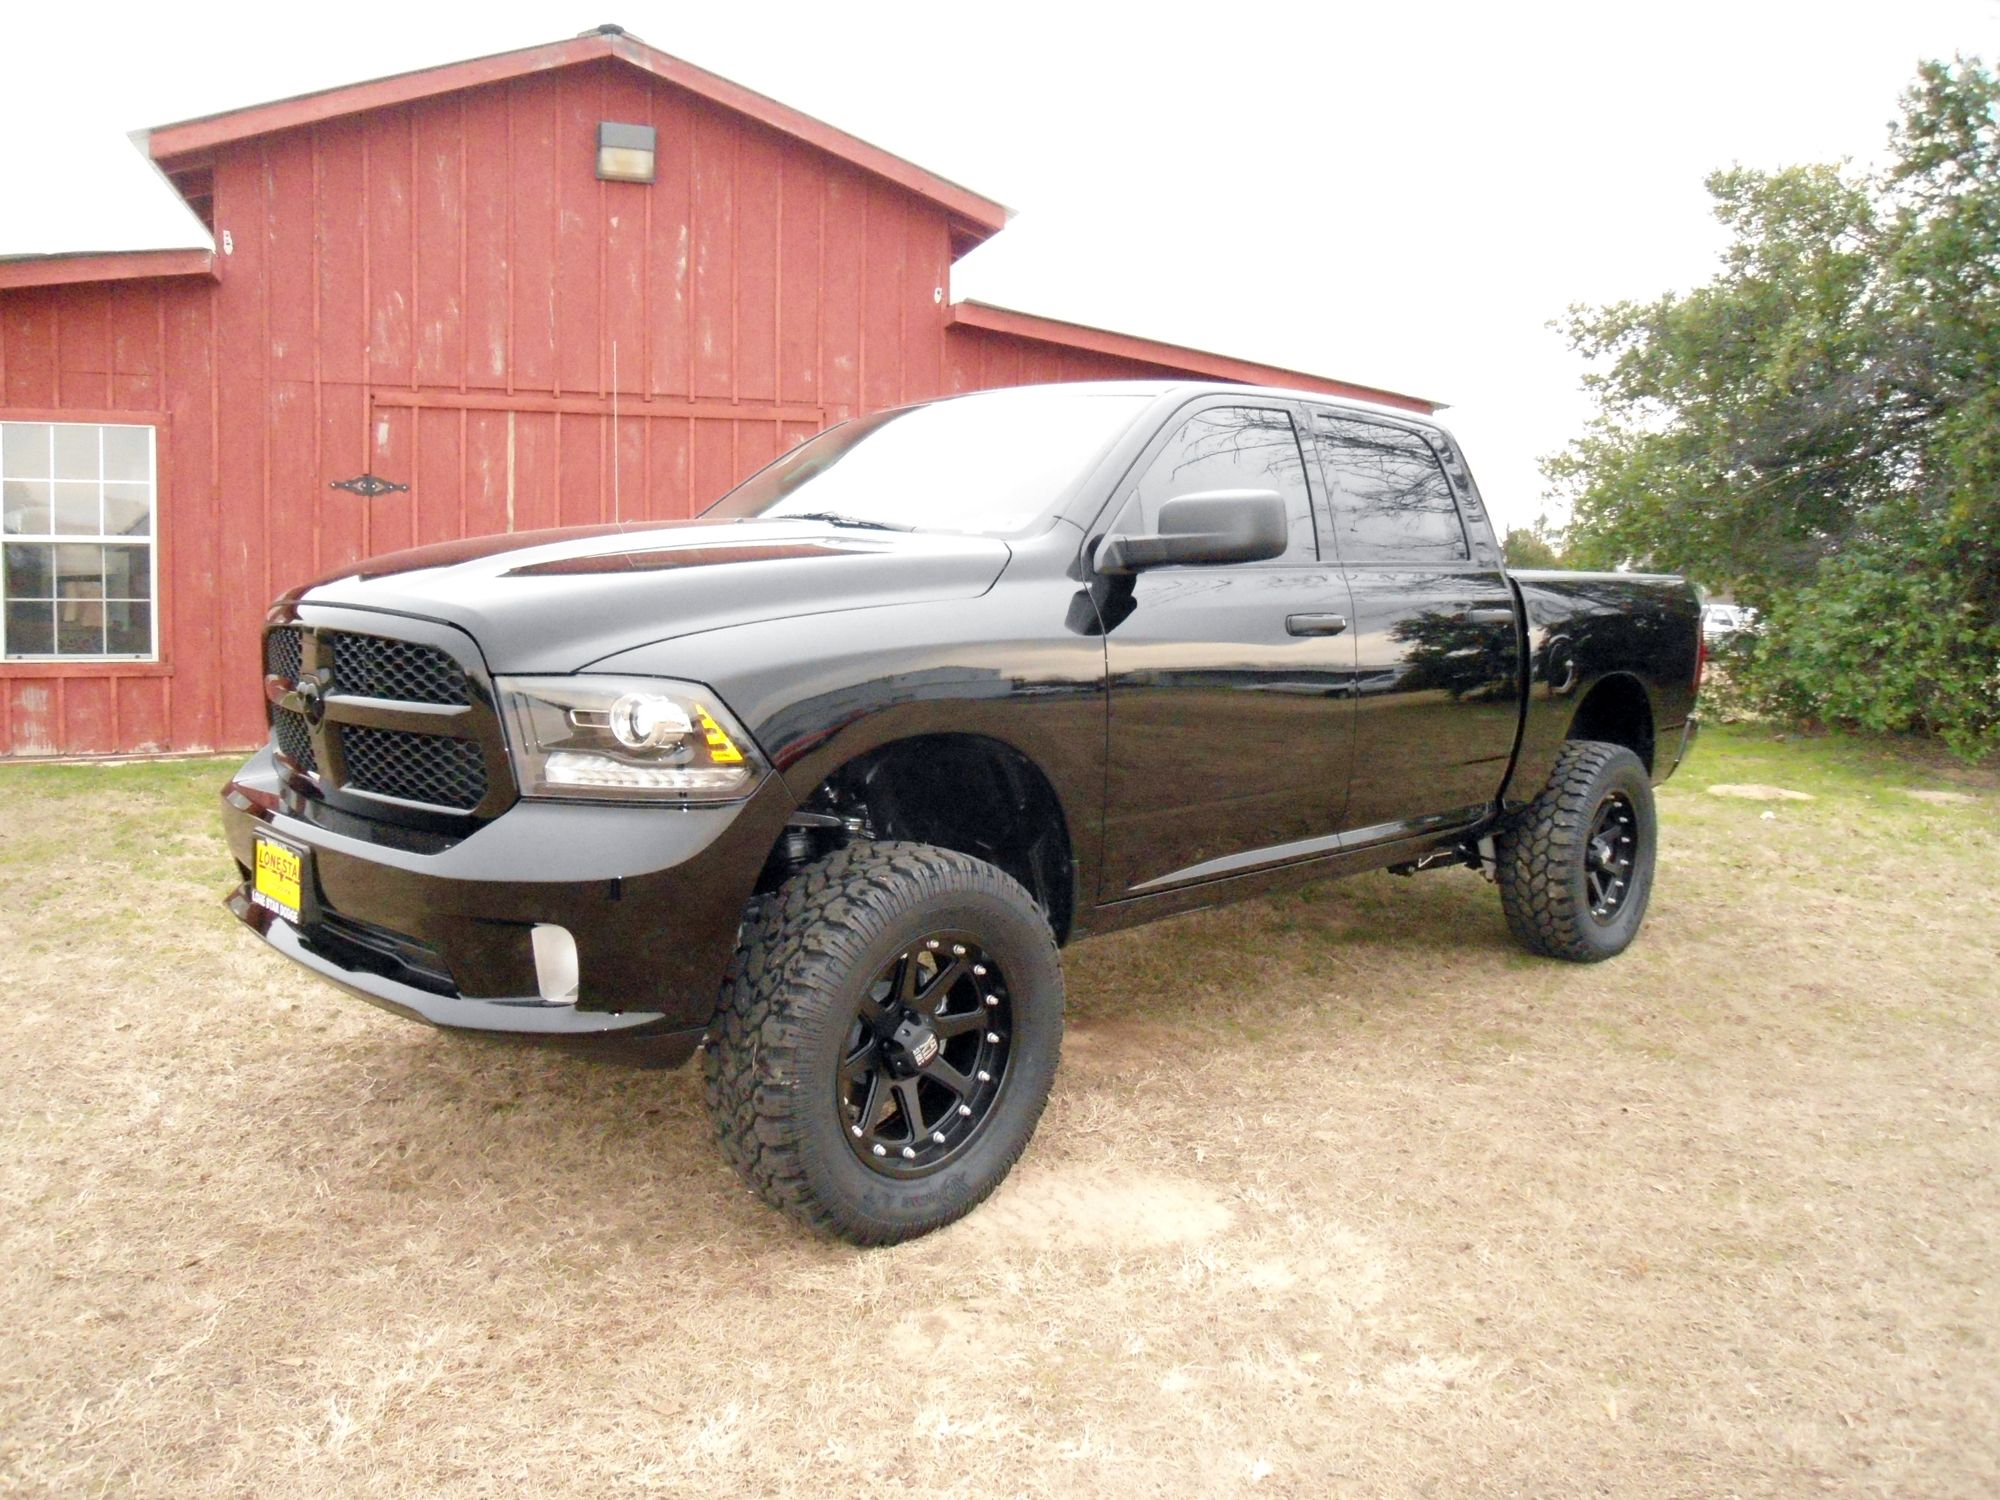 2014 ram black express 4x4 with a 6 inch pro comp lift kit - 2014 Dodge Ram Lifted Black